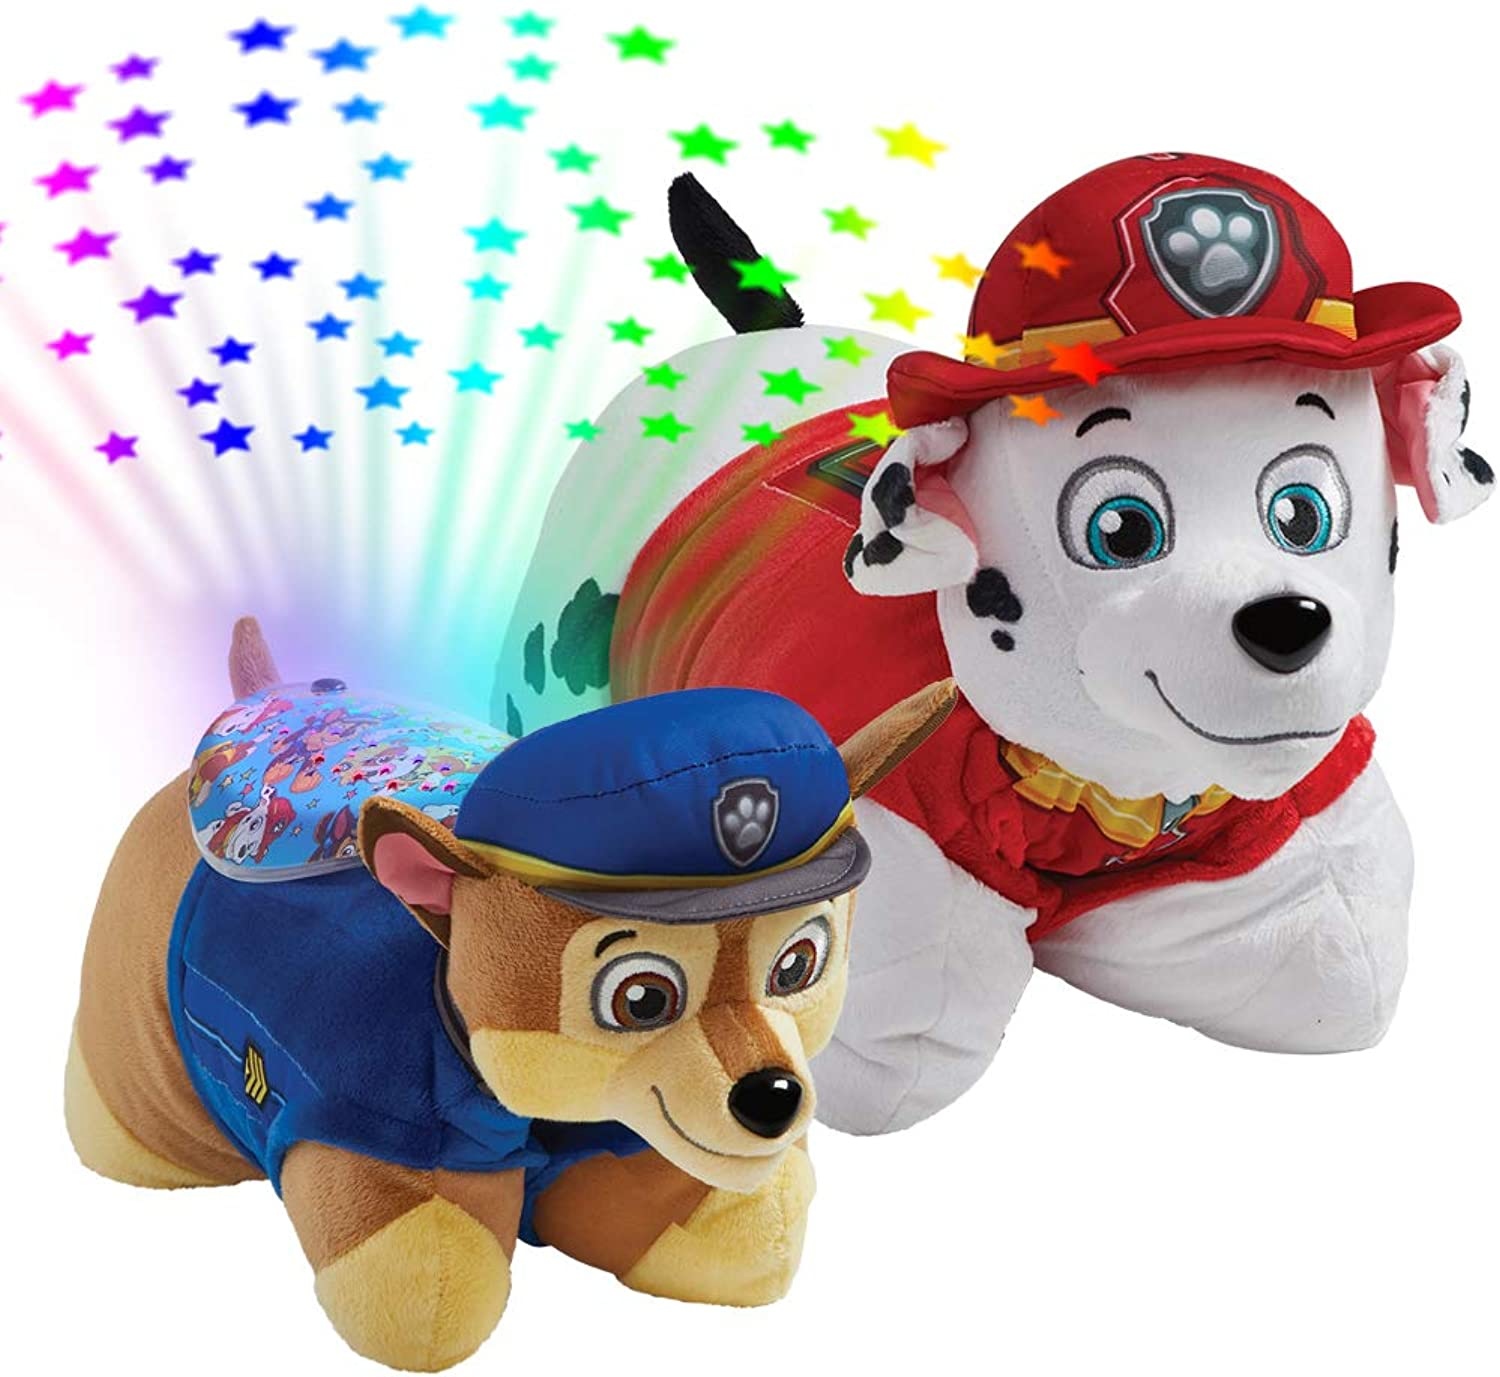 Pillow Pets Nickelodeon Paw Patrol, 16  Marshall and Chase Sleeptime Lites, Stuffed Animal Plush Toy and Night Light